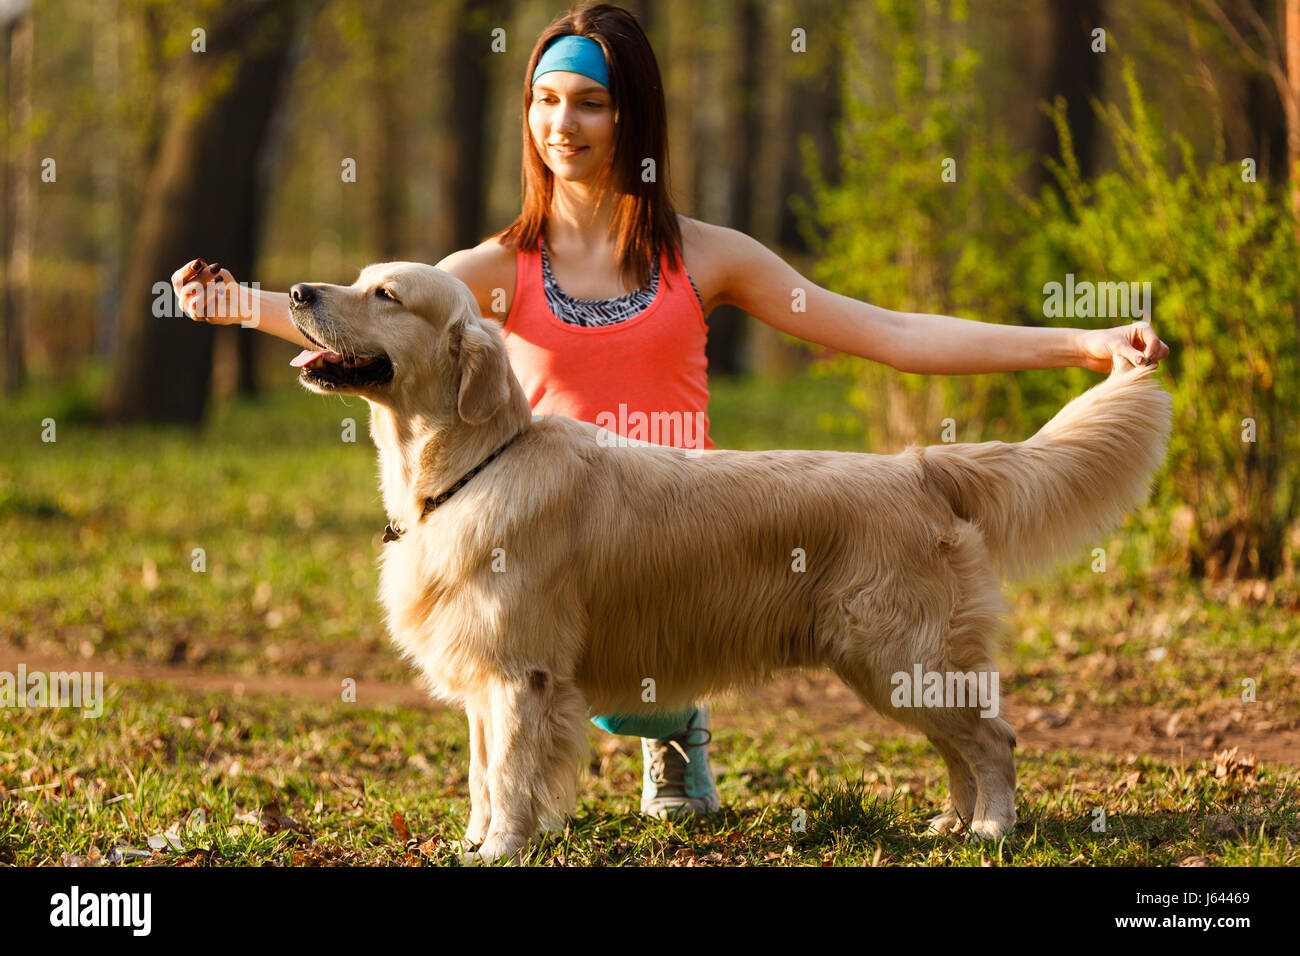 Woman teaching dog in park - Stock Image